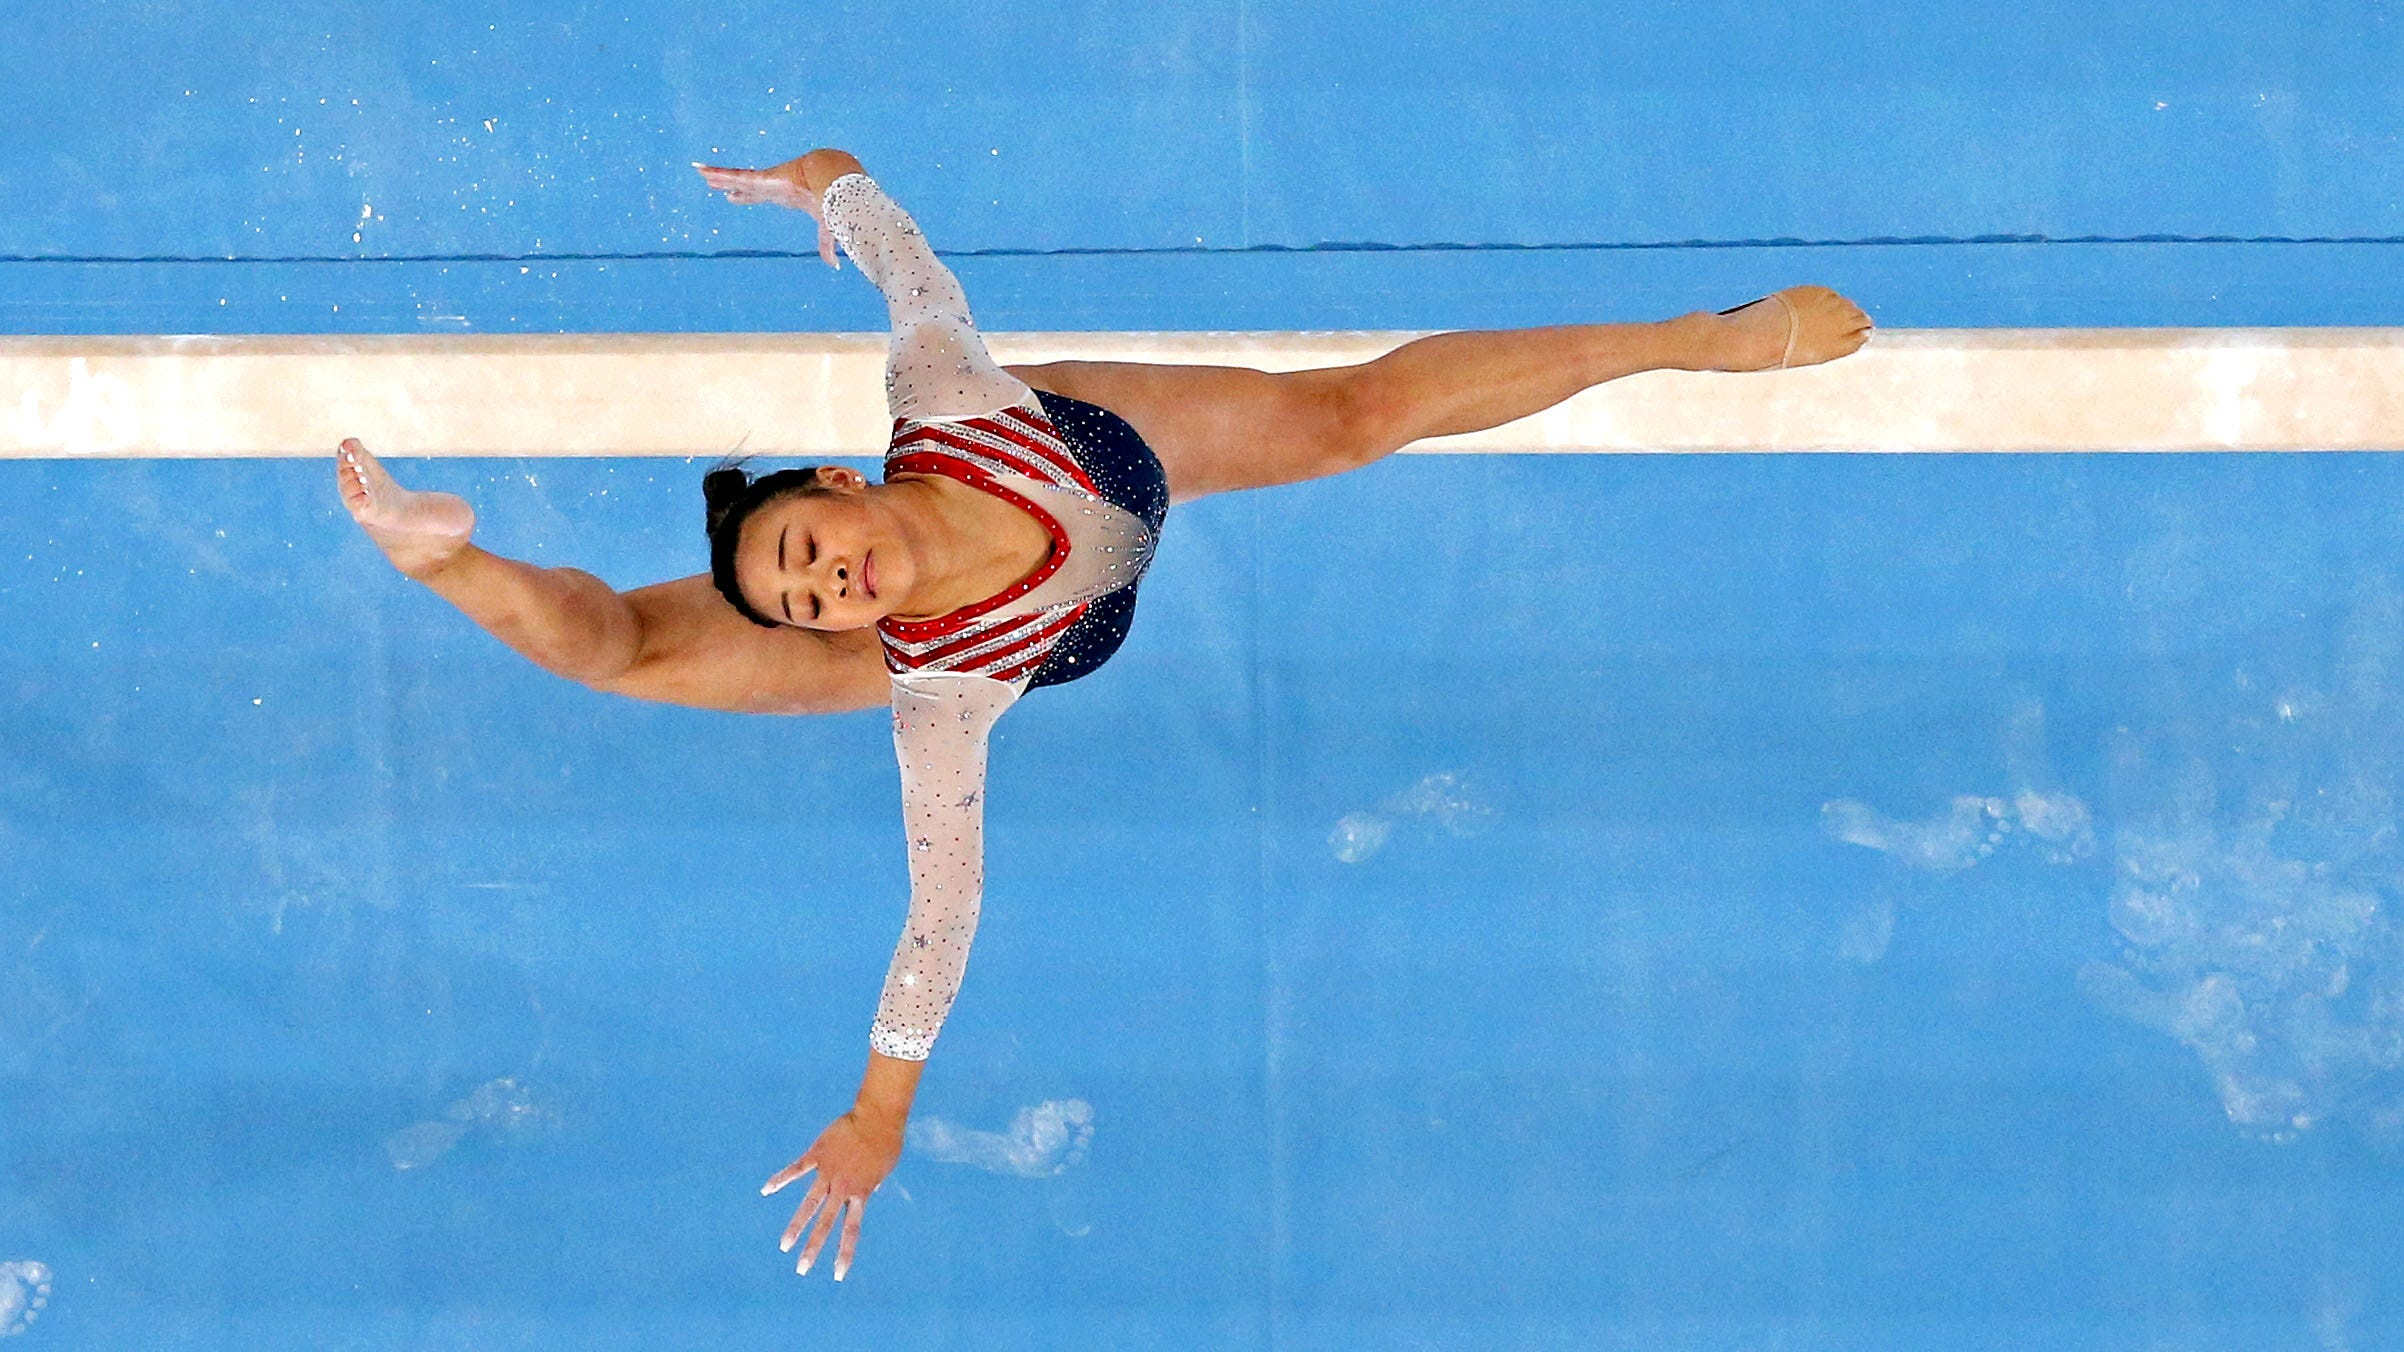 Suni Lee continues US gymnastics dynasty with all-around gold: How she won in photos